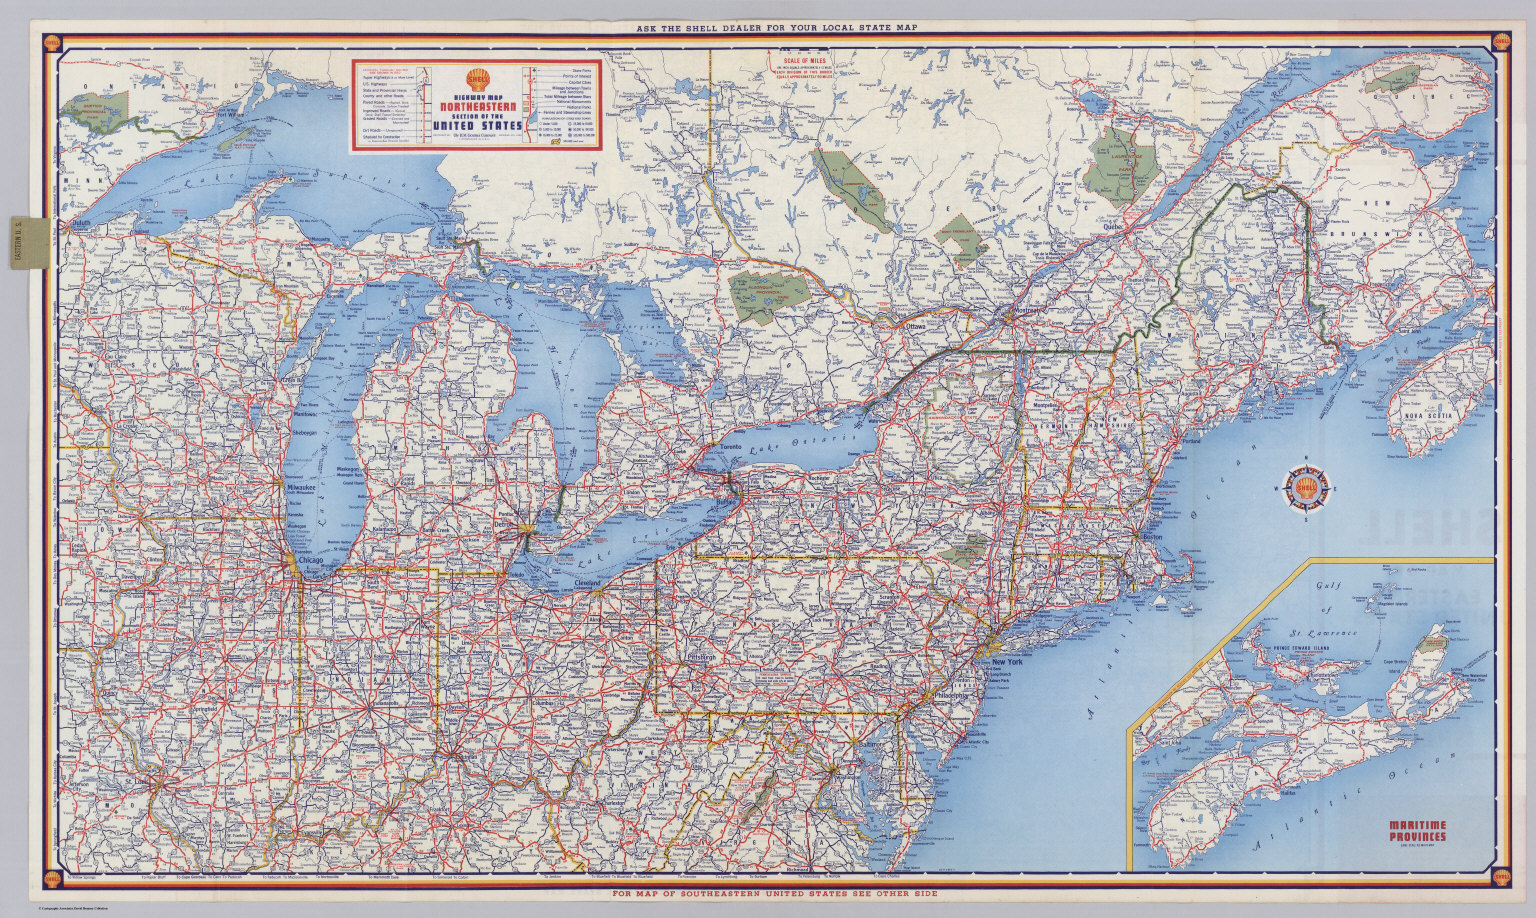 Shell Highway Map Northeastern Section Of The United States - Map of northeastern us and canada